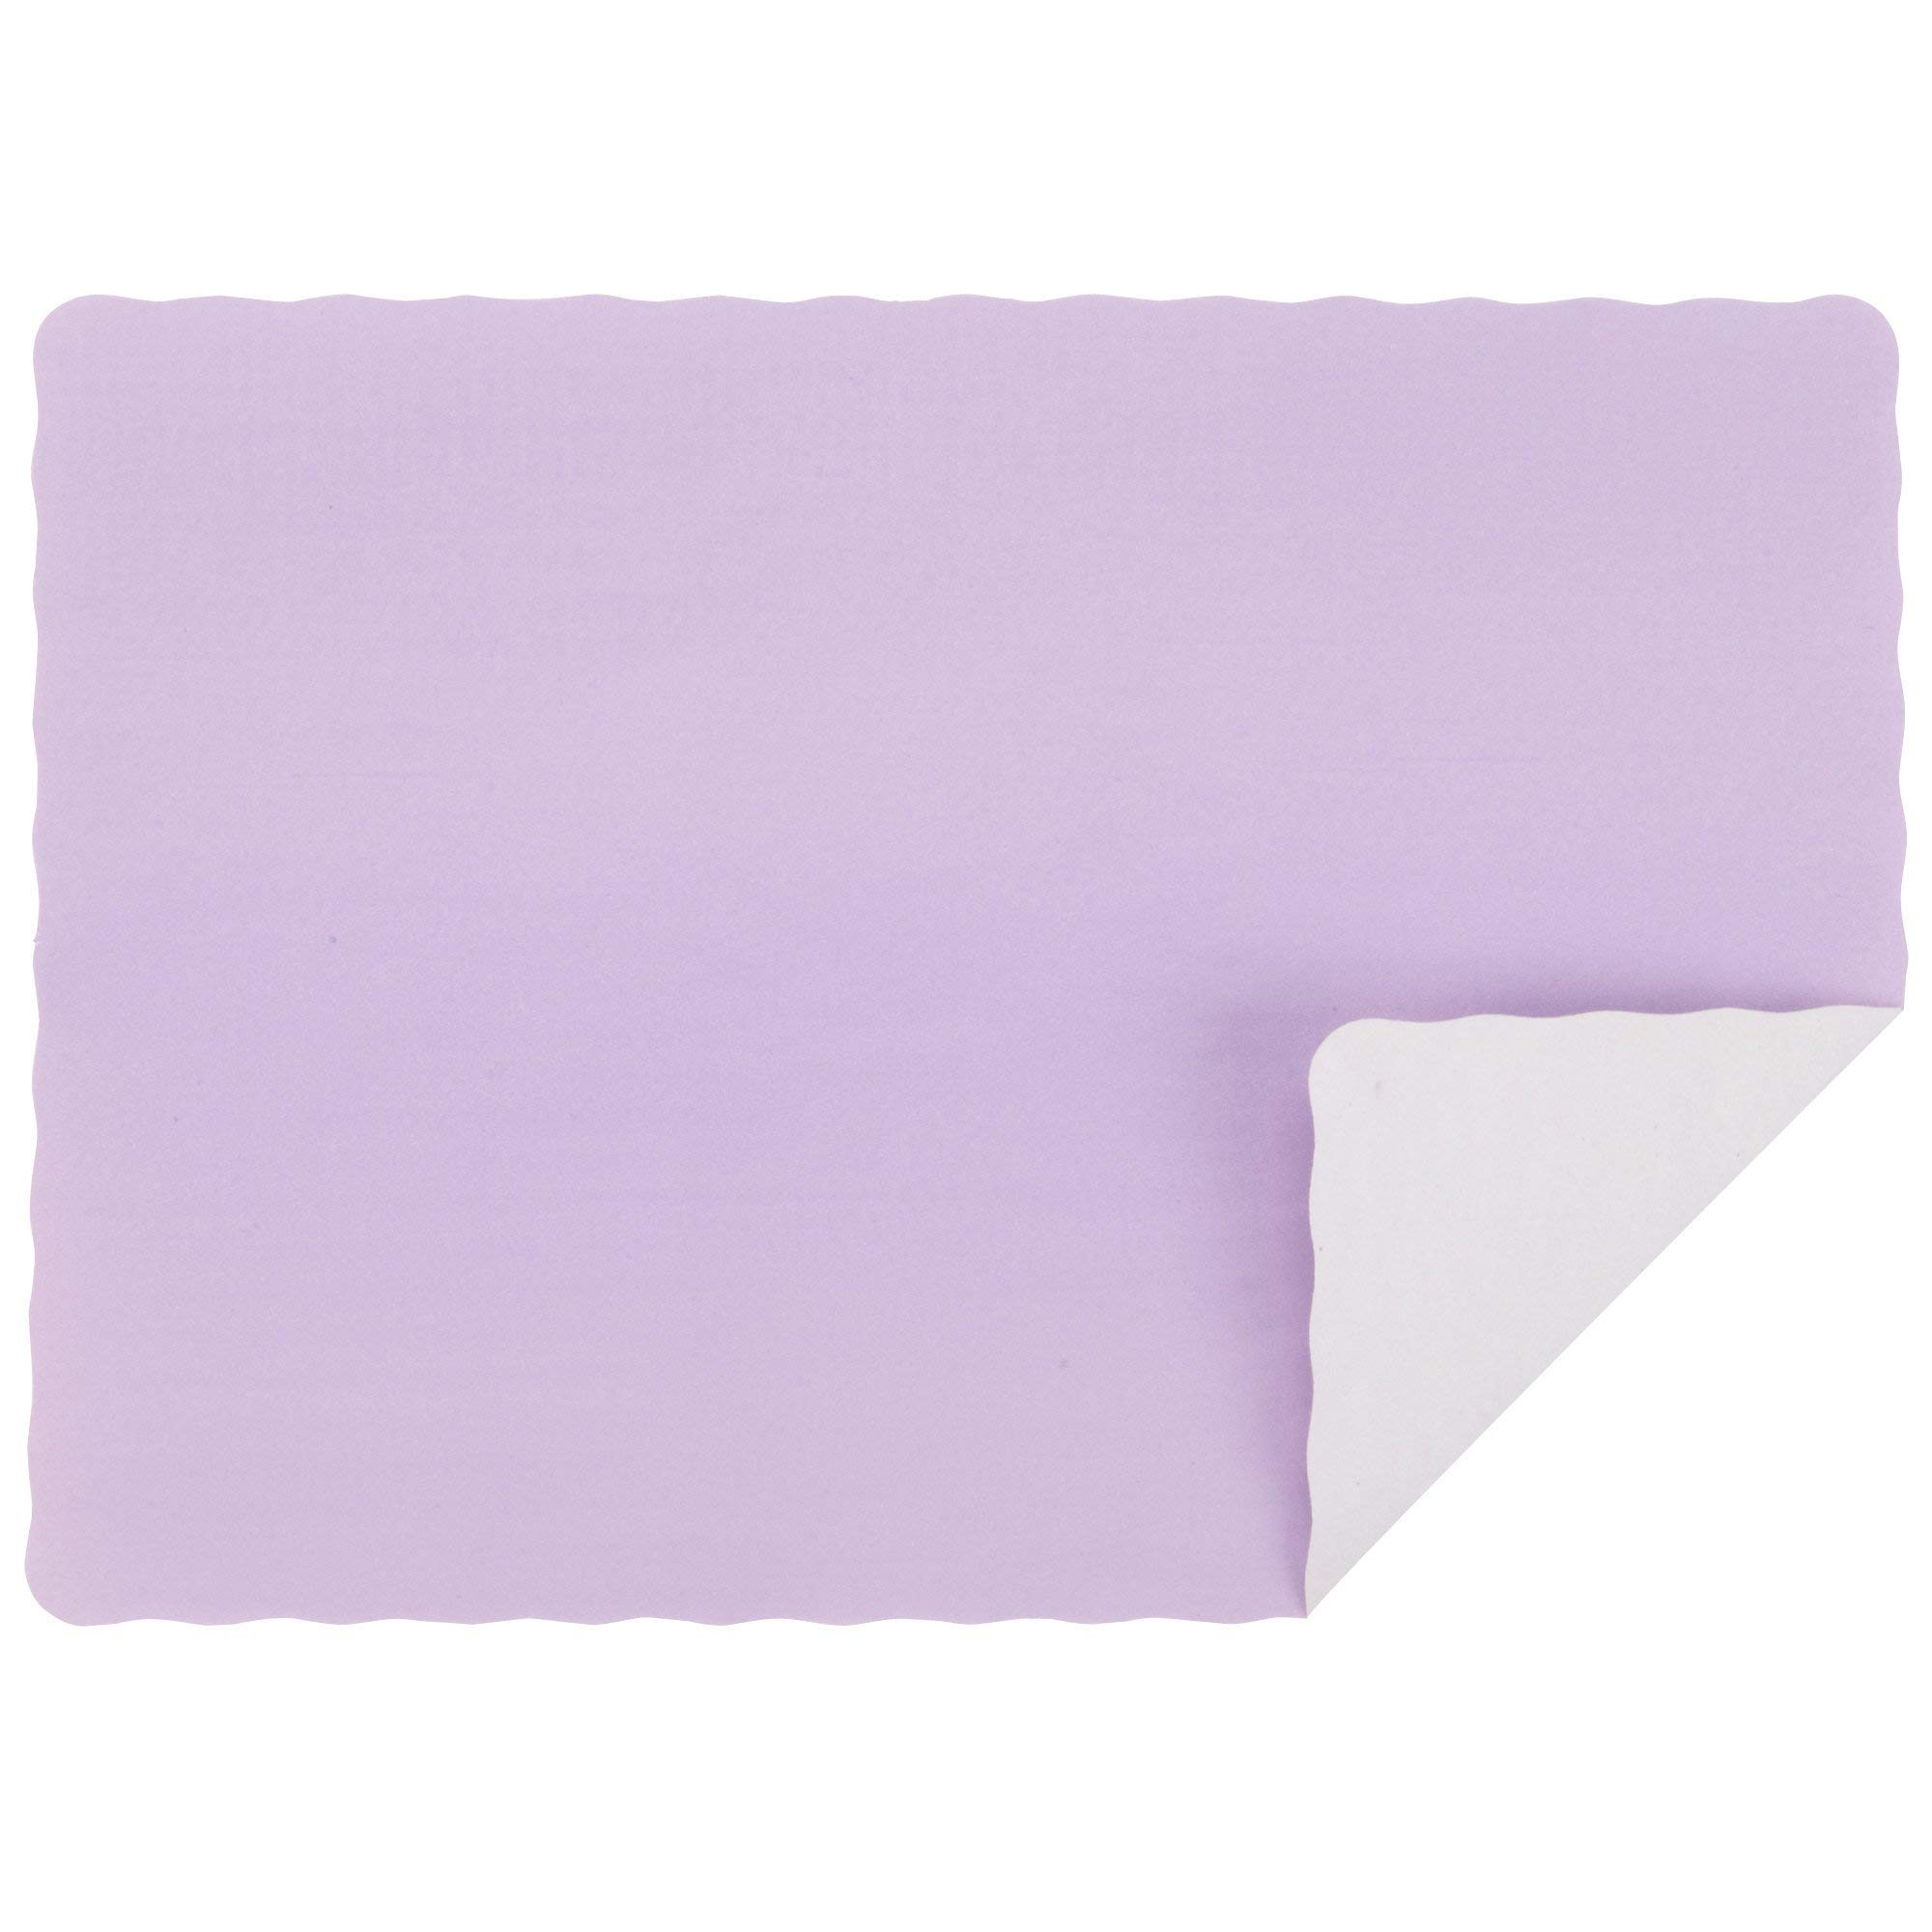 10'' x 14'' Lavender Colored Paper Placemat with Scalloped Edge - 1000/Case